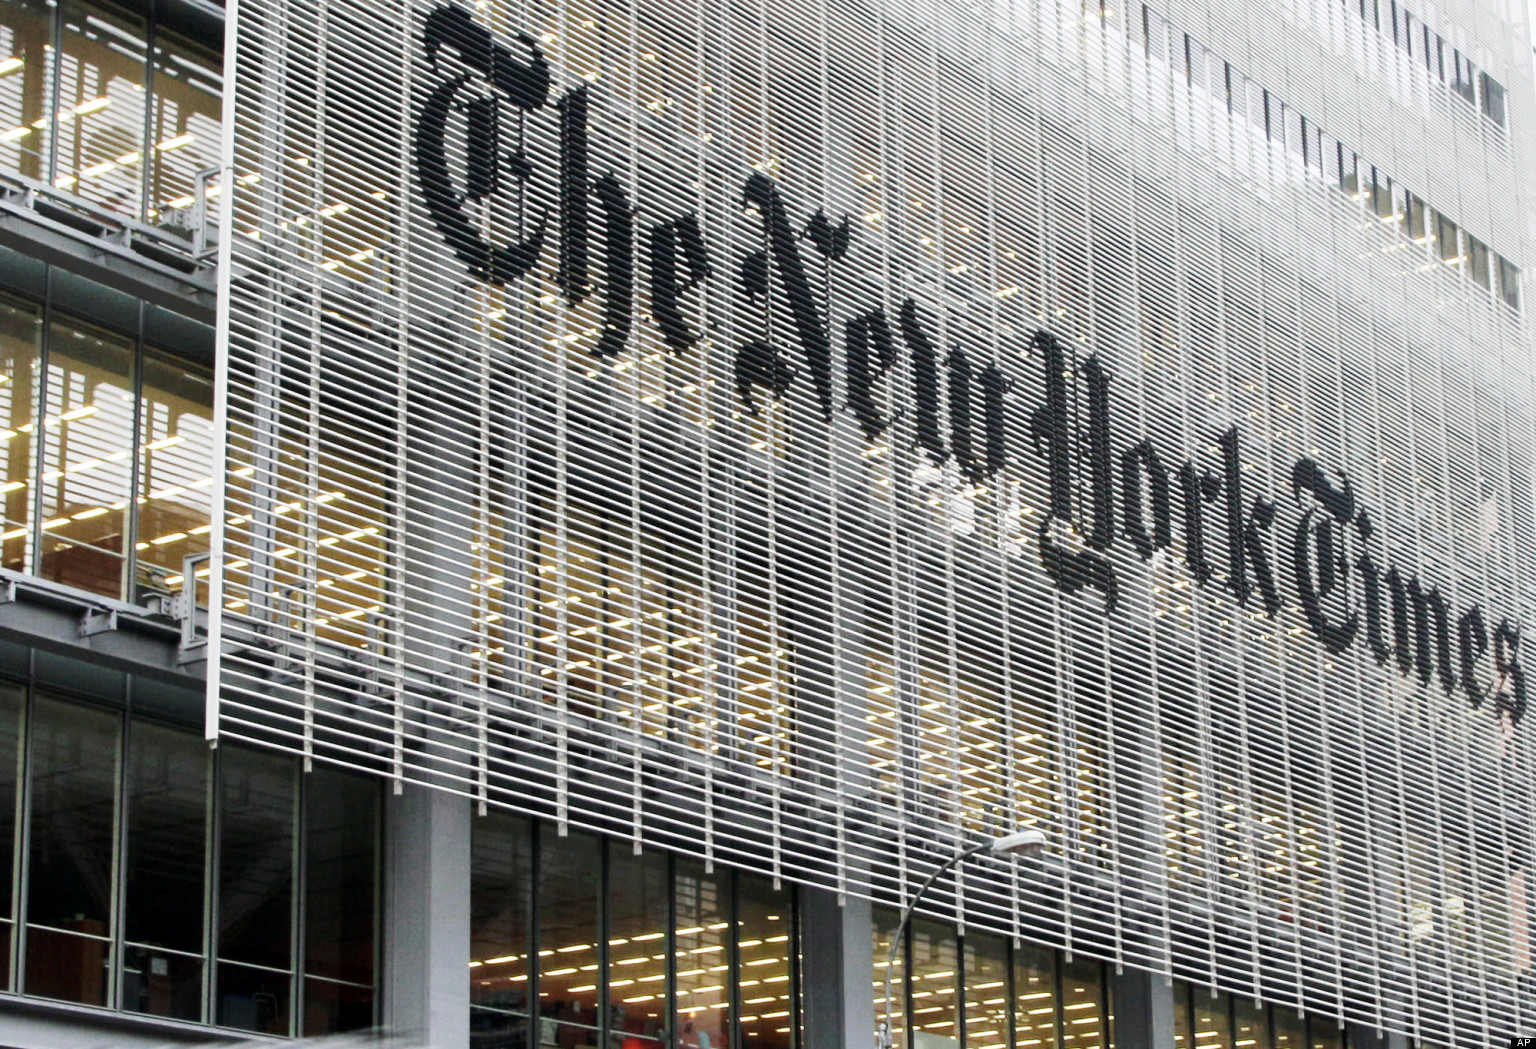 Afghanistan Gives NYT Reporter 24 Hours to Leave Country